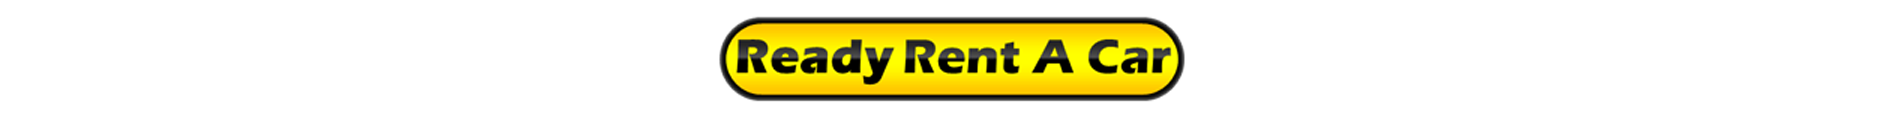 Ready Rent A Car